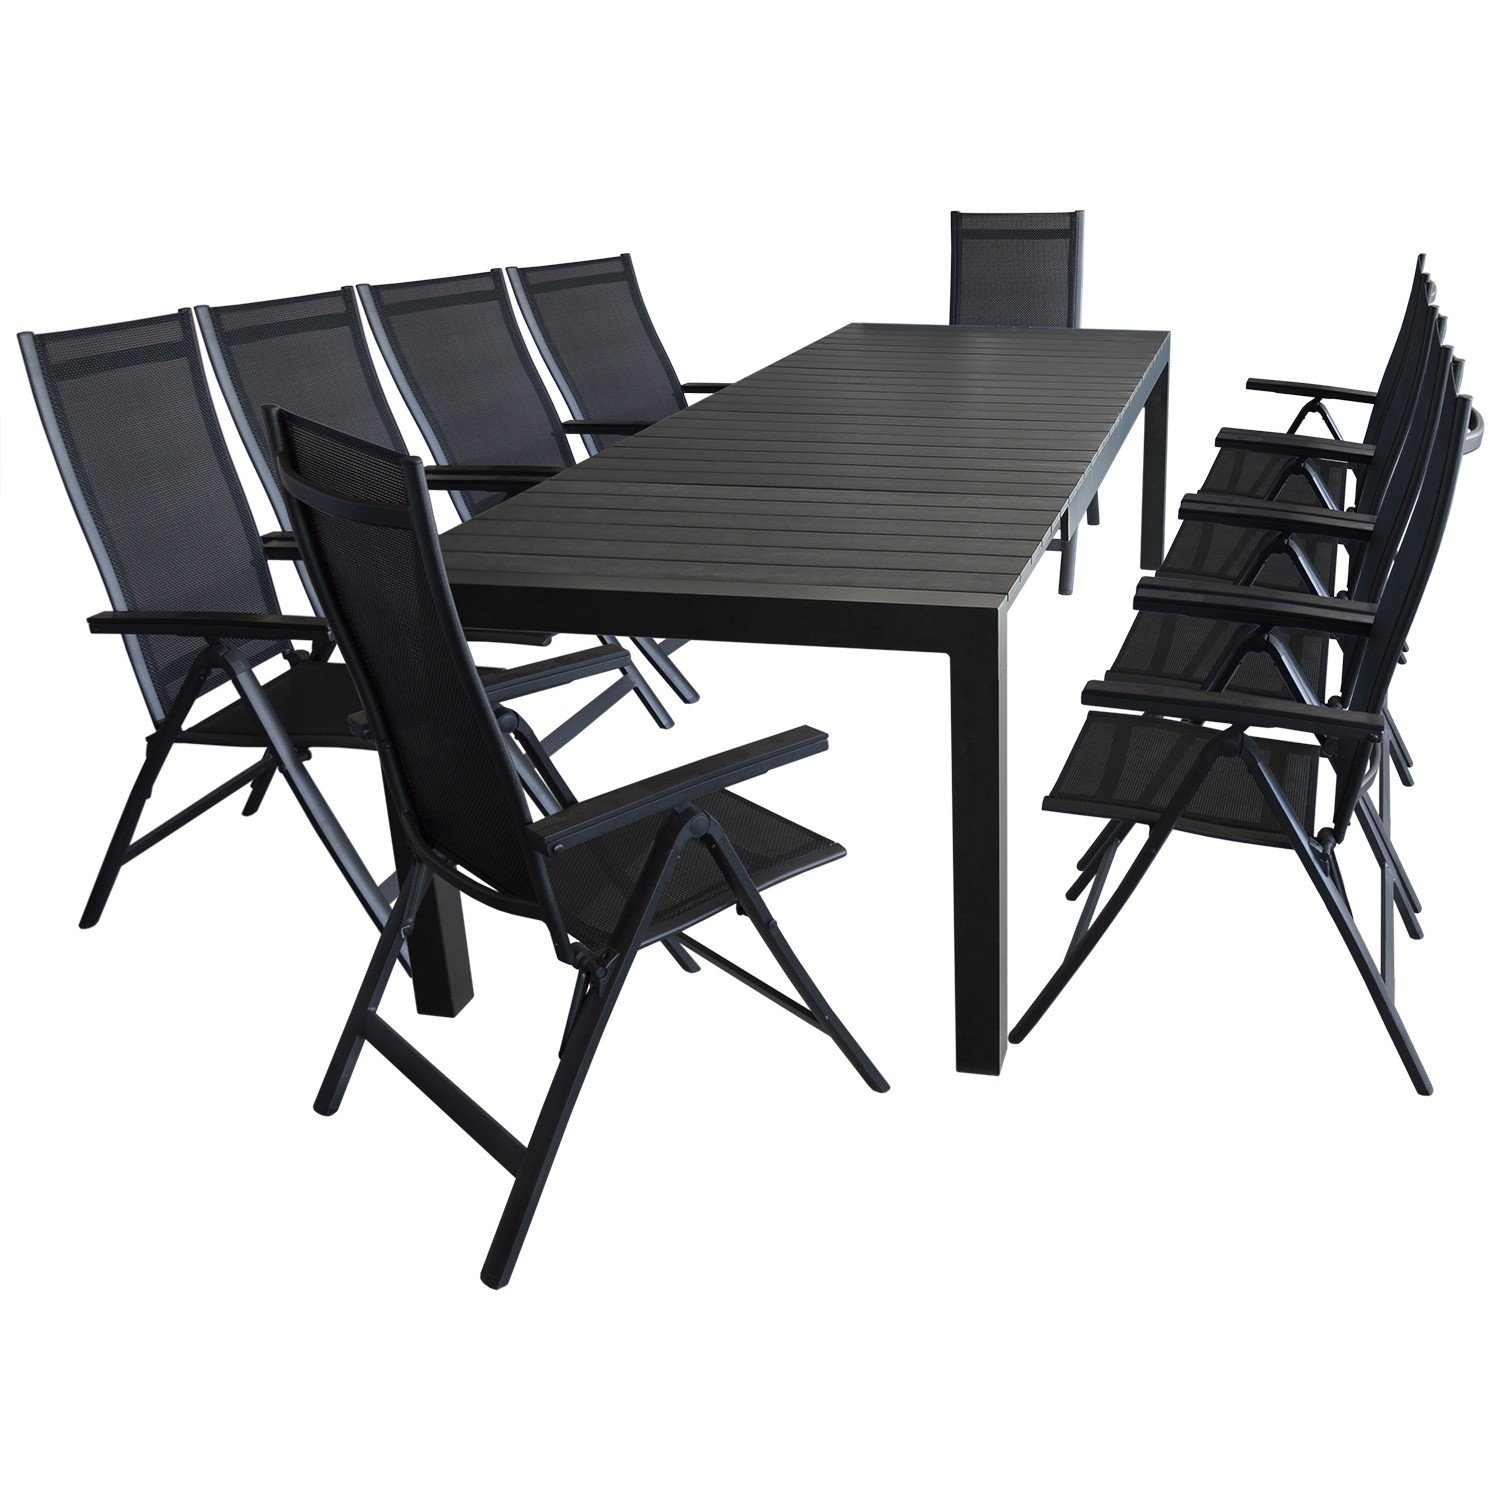 11tlg gartenm bel terrassenm bel set sitzgruppe gartengarnitur aluminium ausziehtisch 224. Black Bedroom Furniture Sets. Home Design Ideas